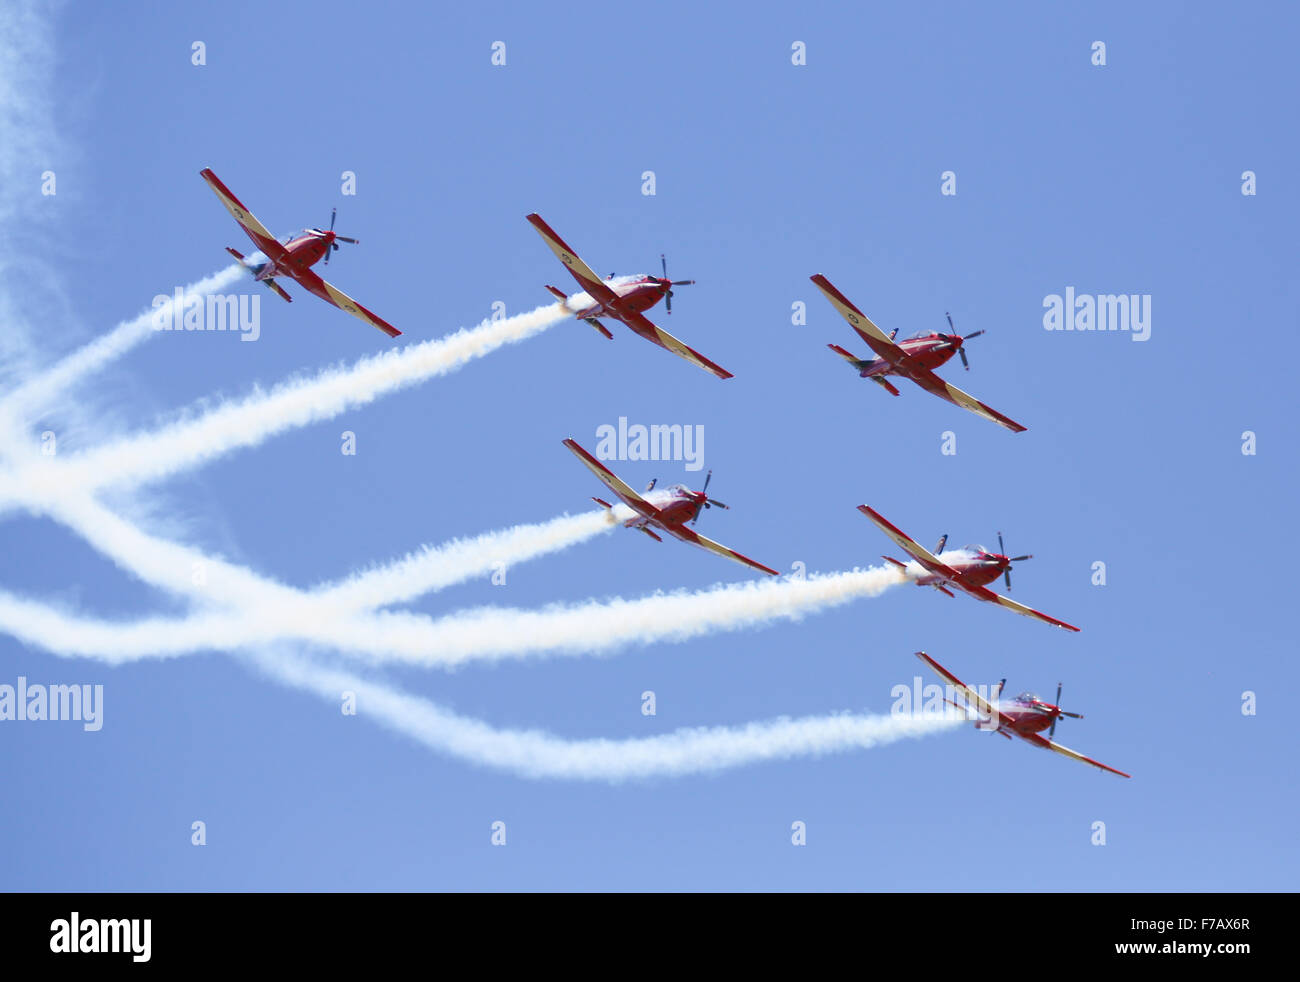 Royal Australian Air Force Roulettes at Warbirds Down Under 2015, Temora, NSW, Australia. - Stock Image